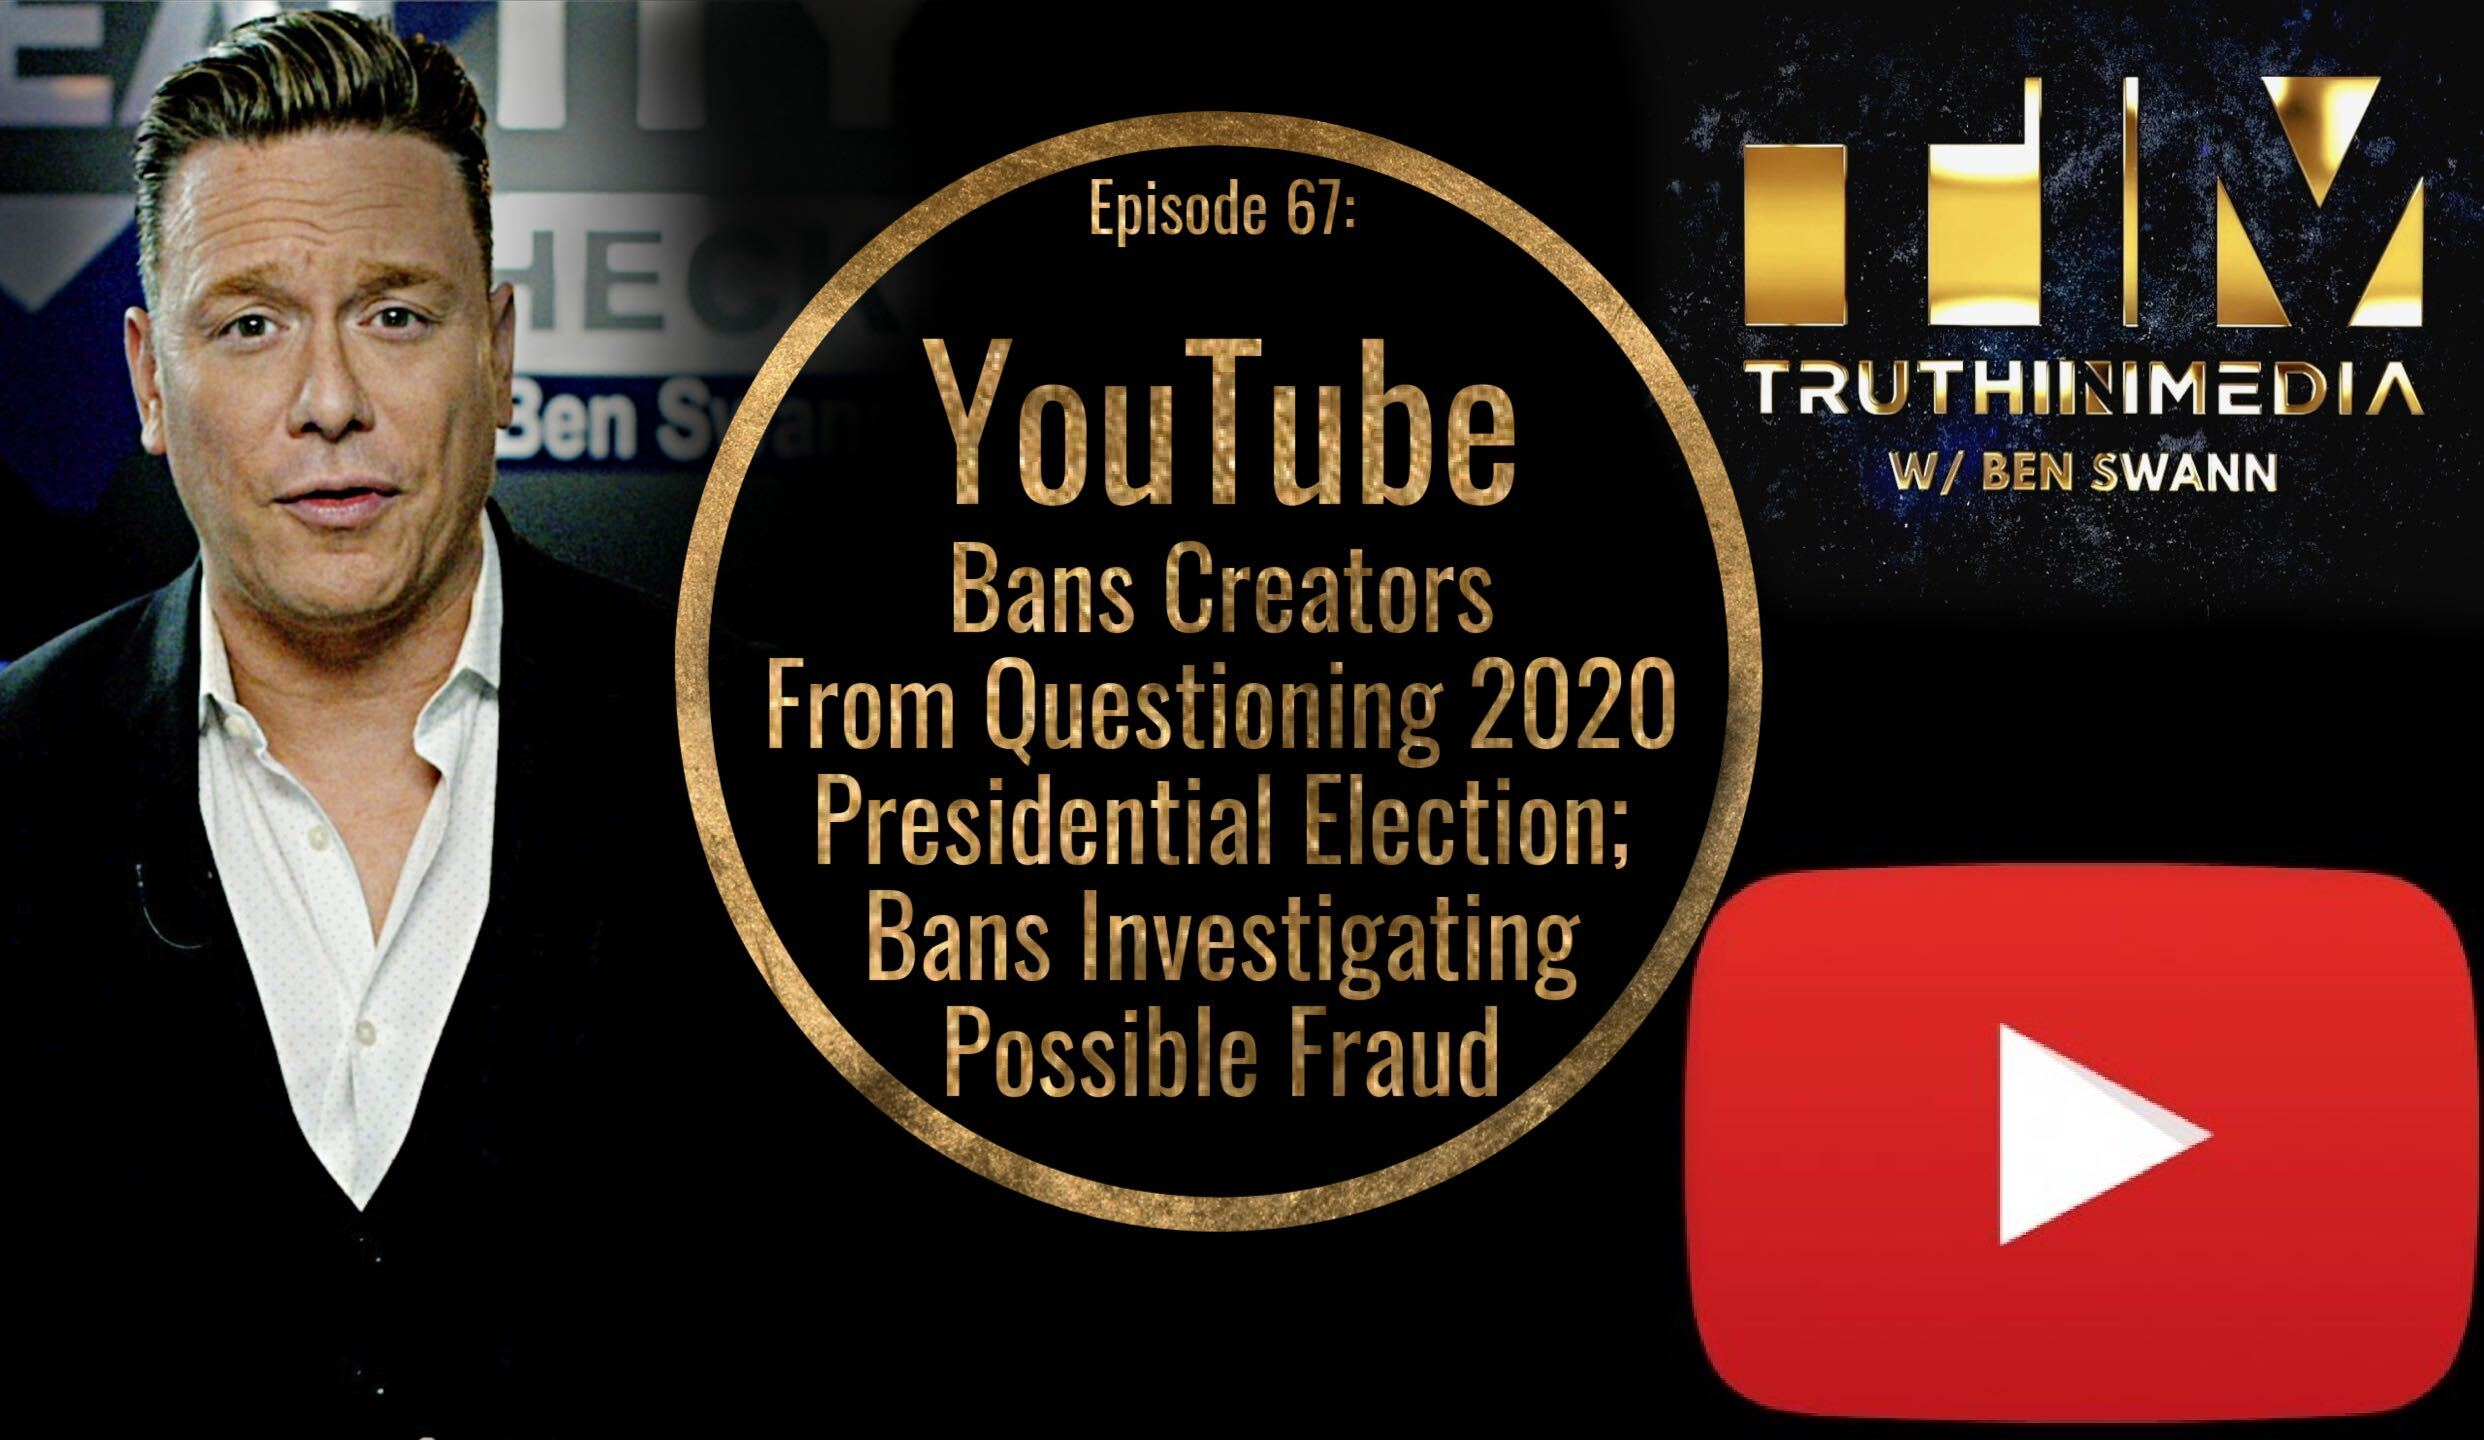 YouTube Bans Creators From Questioning 2020 Presidential Election; Bans Investigating Possible Fraud